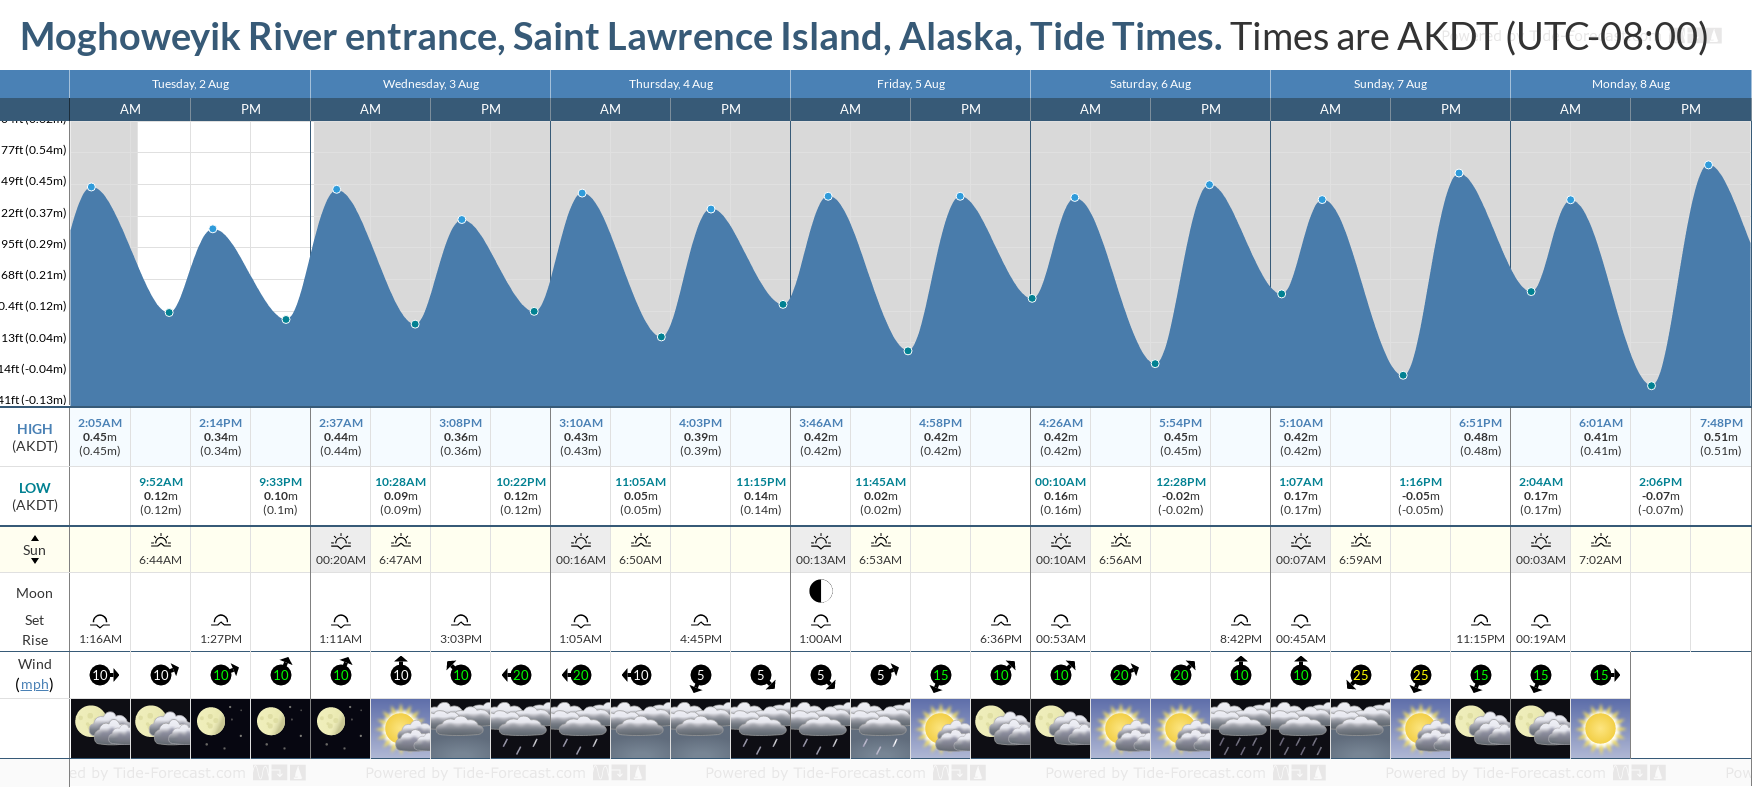 Moghoweyik River entrance, Saint Lawrence Island, Alaska Tide Chart including high and low tide tide times for the next 7 days